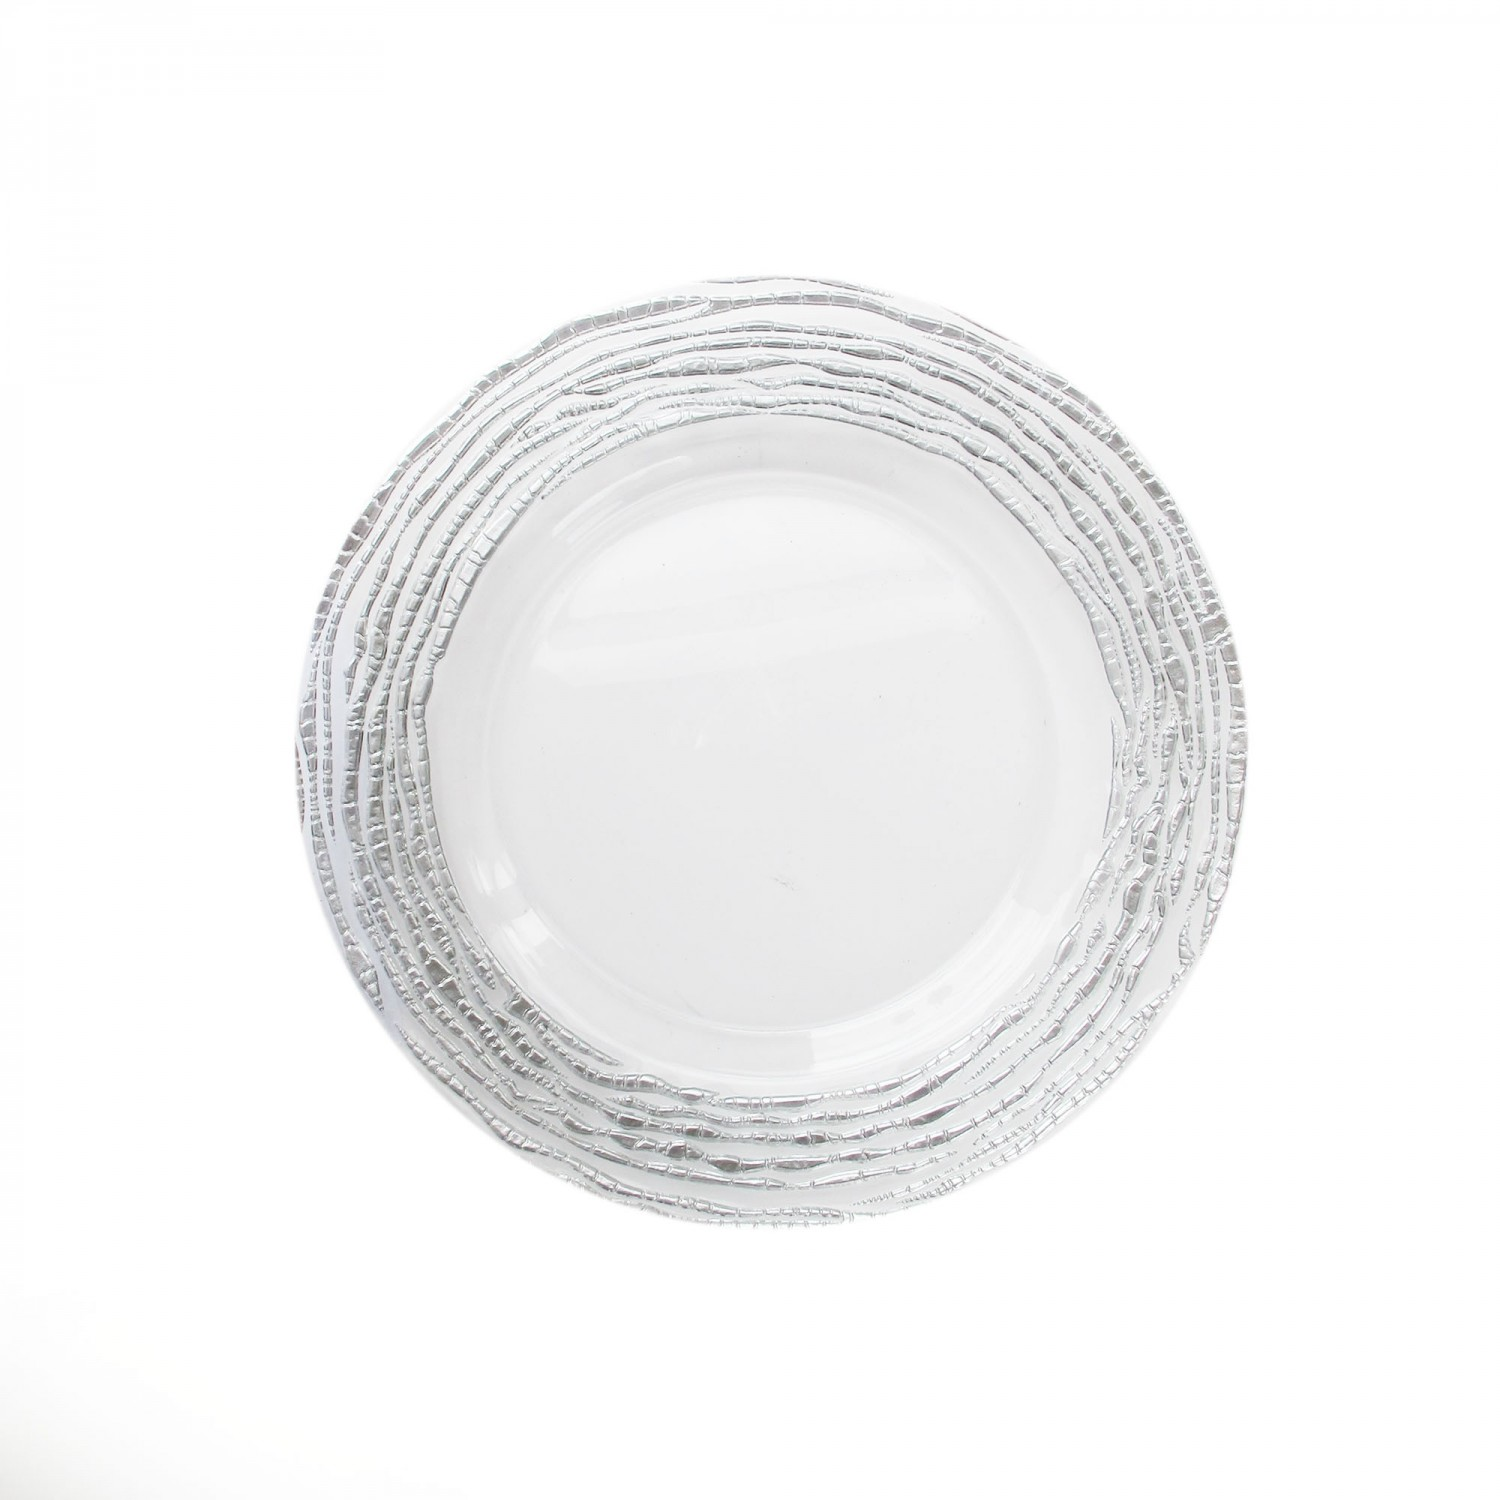 The Jay Companies 1470321-SL Arizona Silver Glass Charger Plate 13""